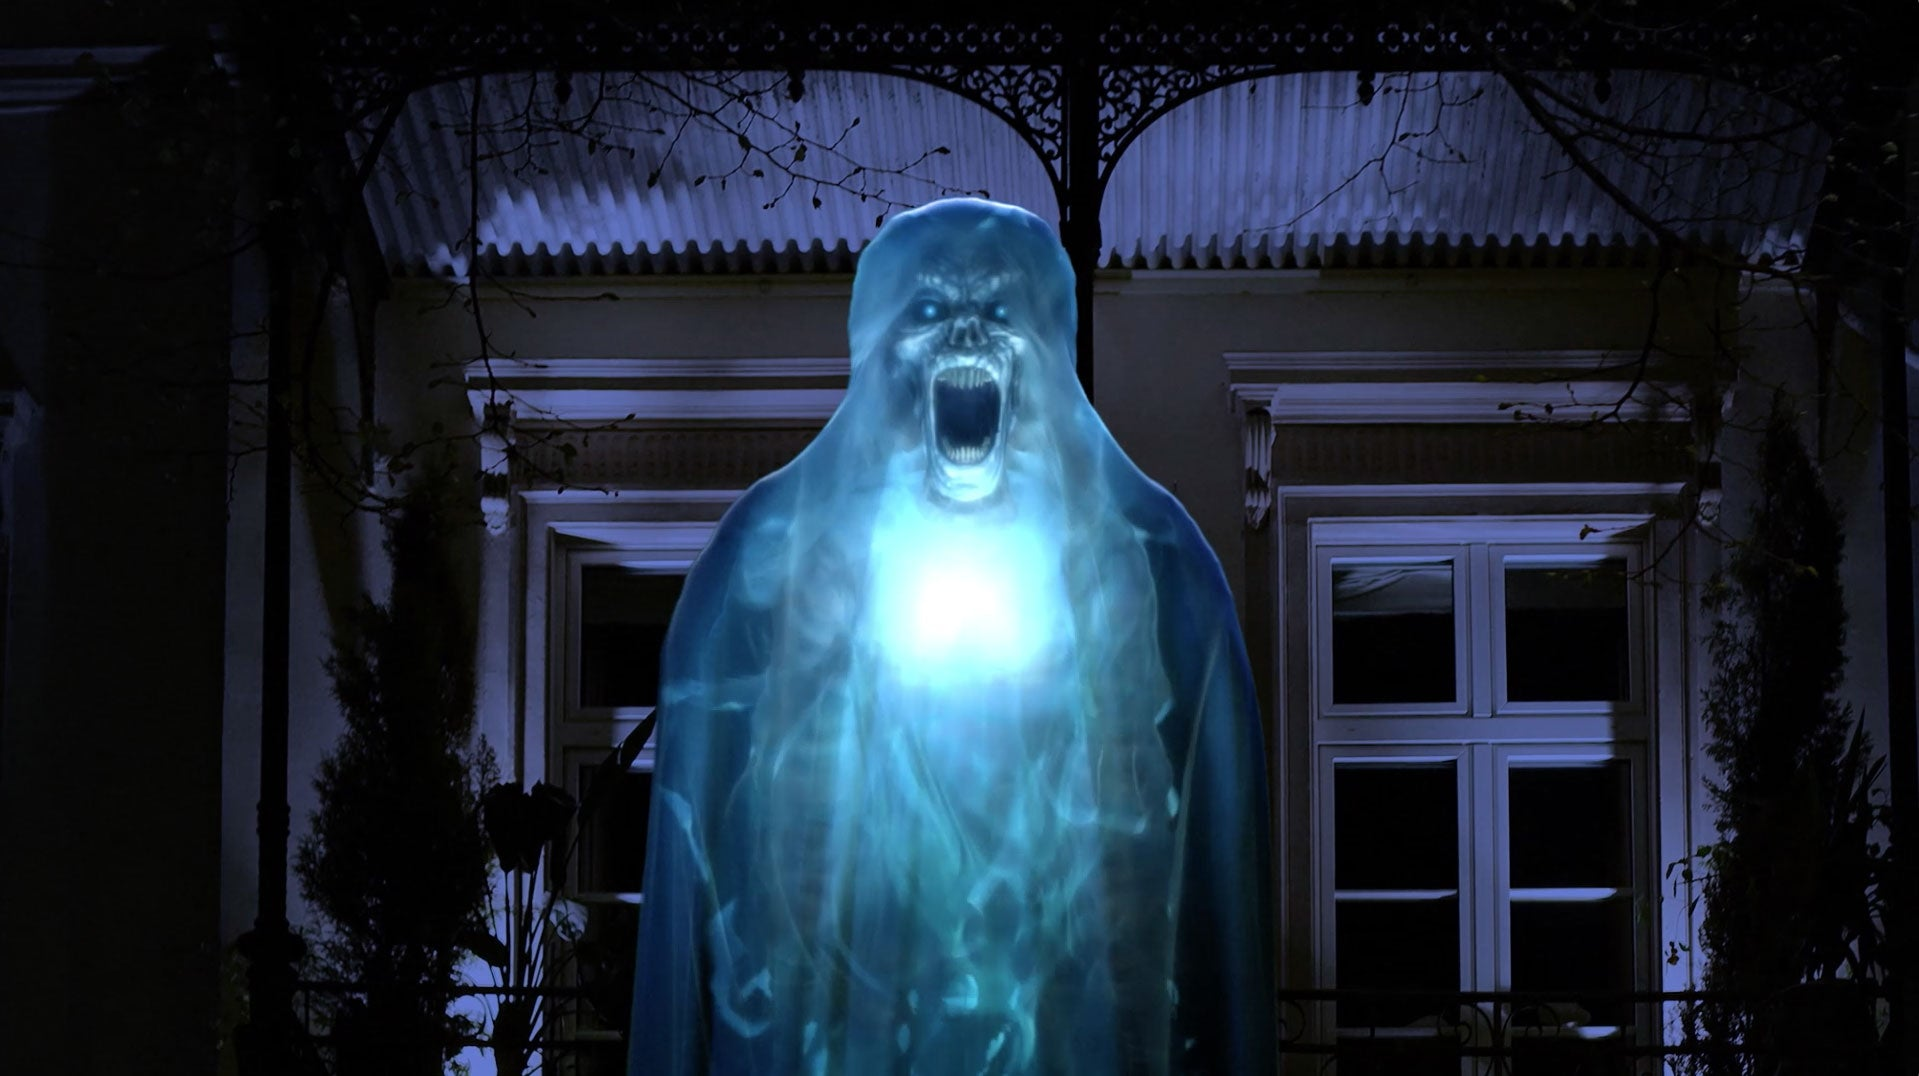 ghostly apparitions - atmosfx digital decorations